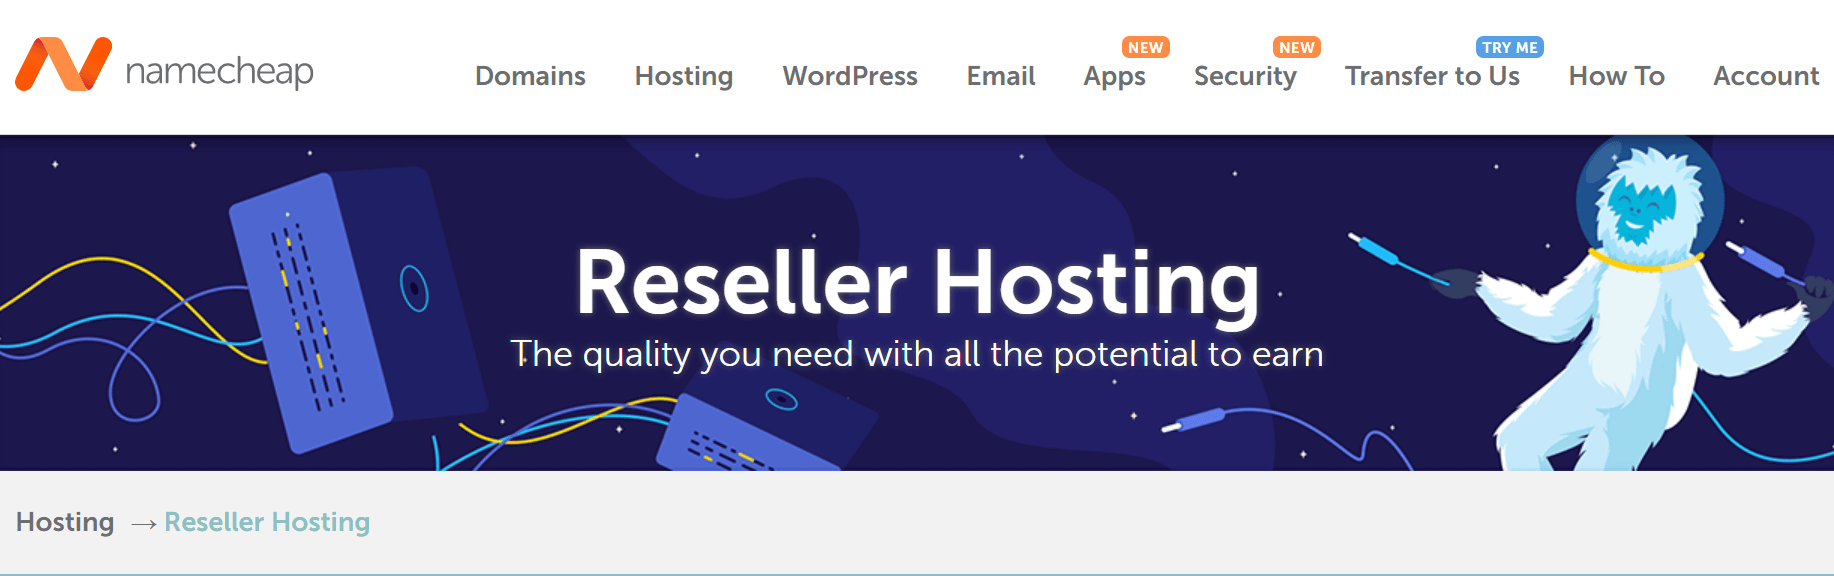 Namecheap's reseller hosting page.